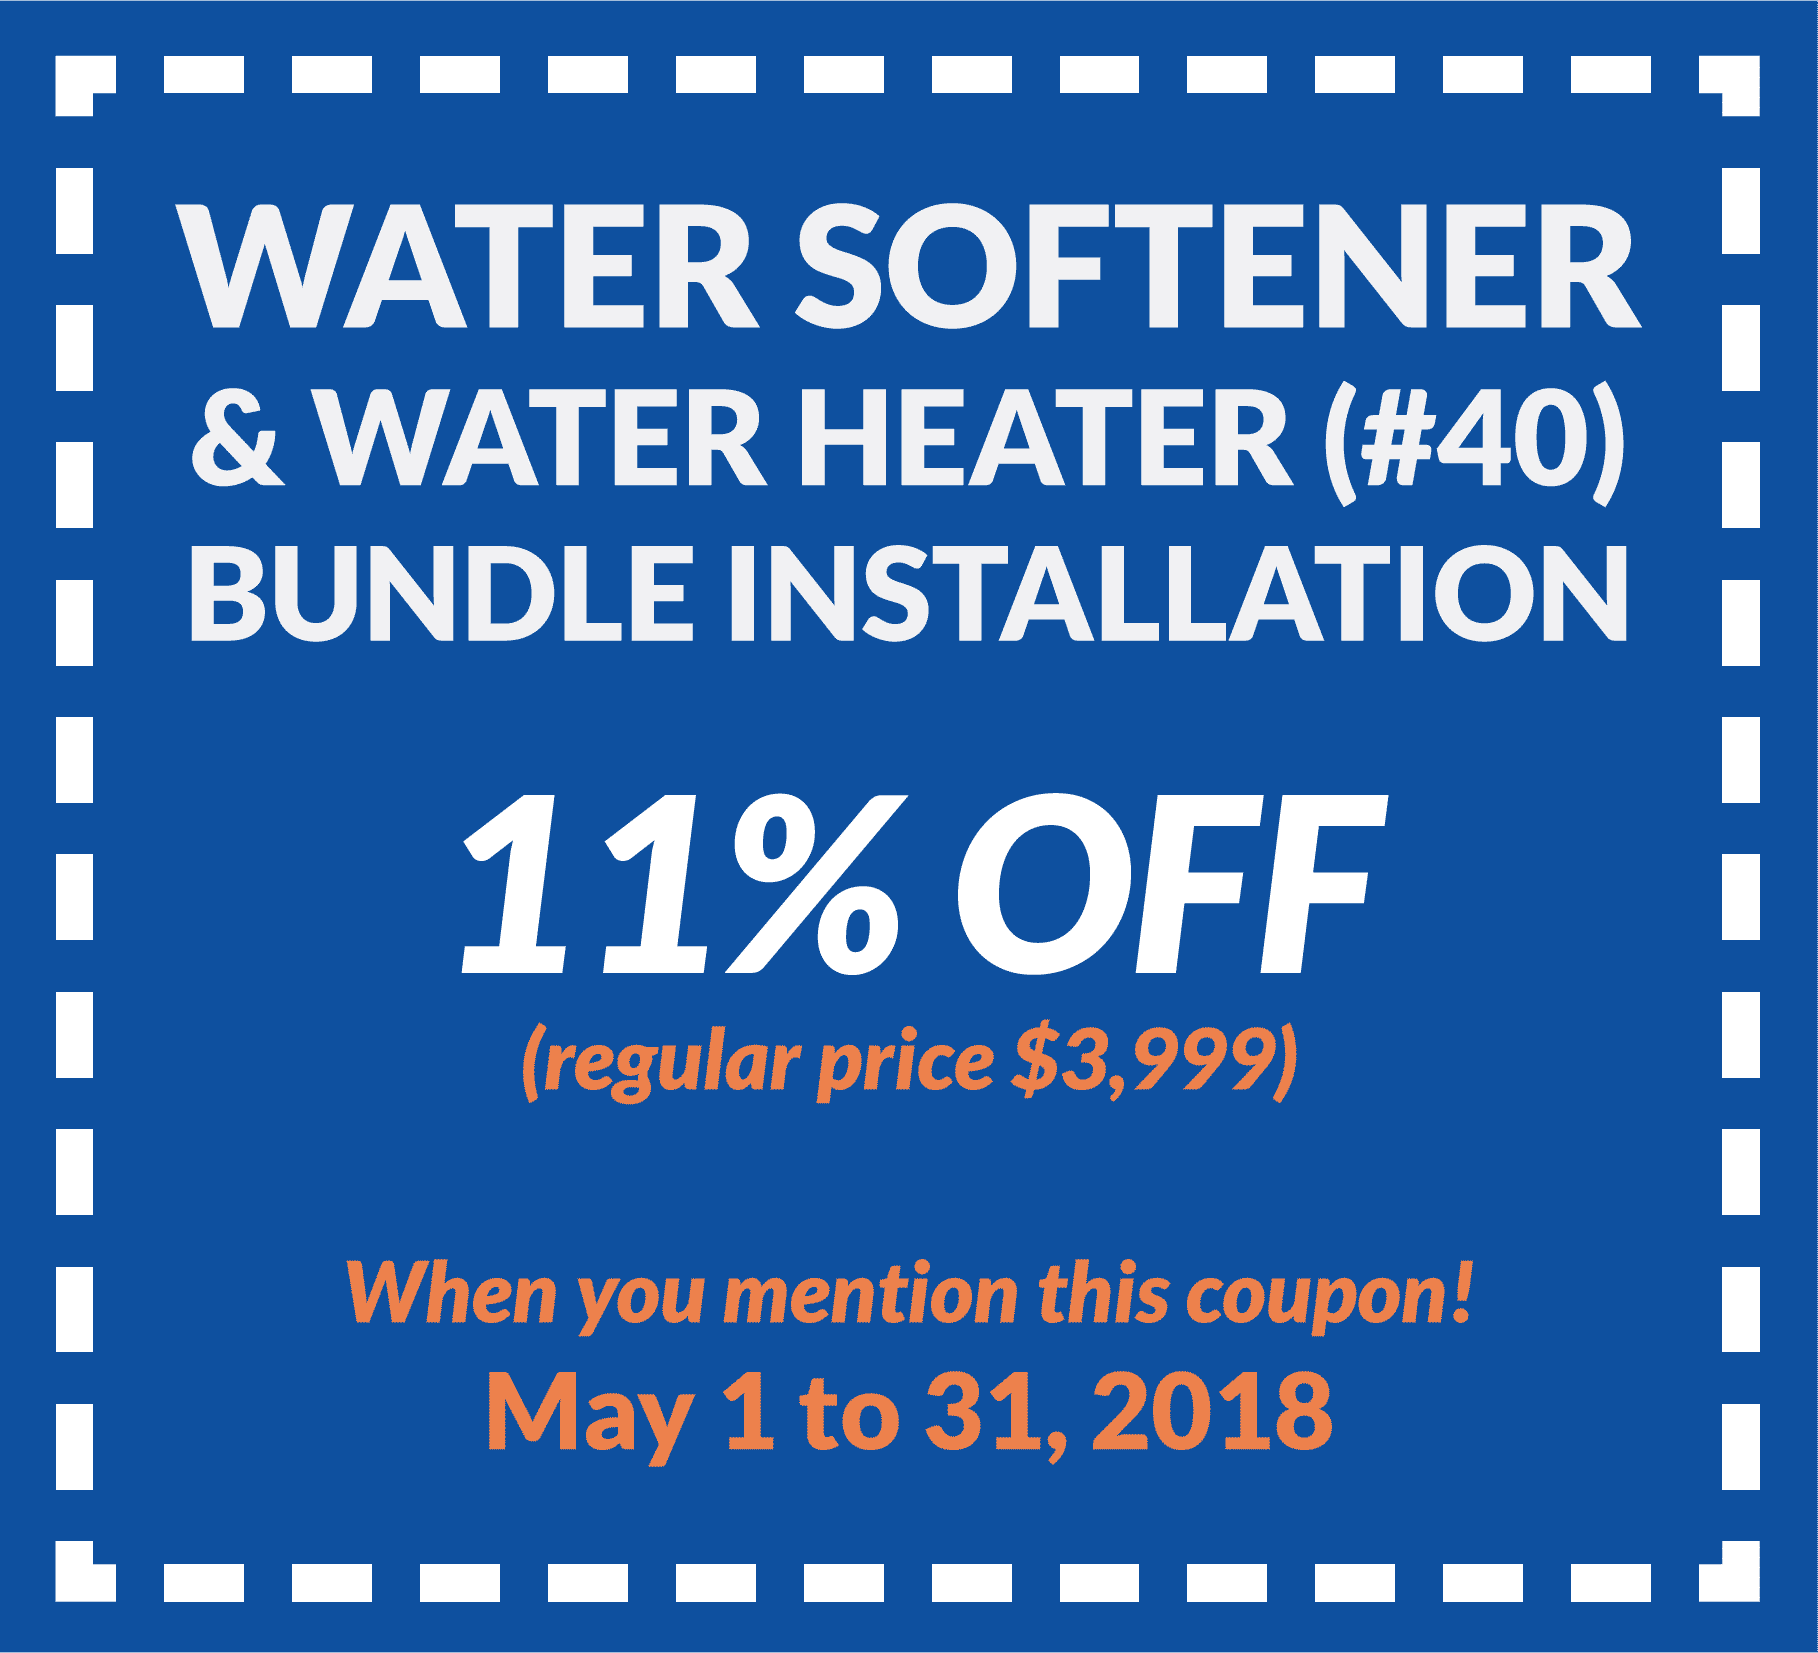 Coupon for water softener and water heater (#40) bundle installation for 11% off regular price ($3,999). Valid from May 1 to 31, 2018.